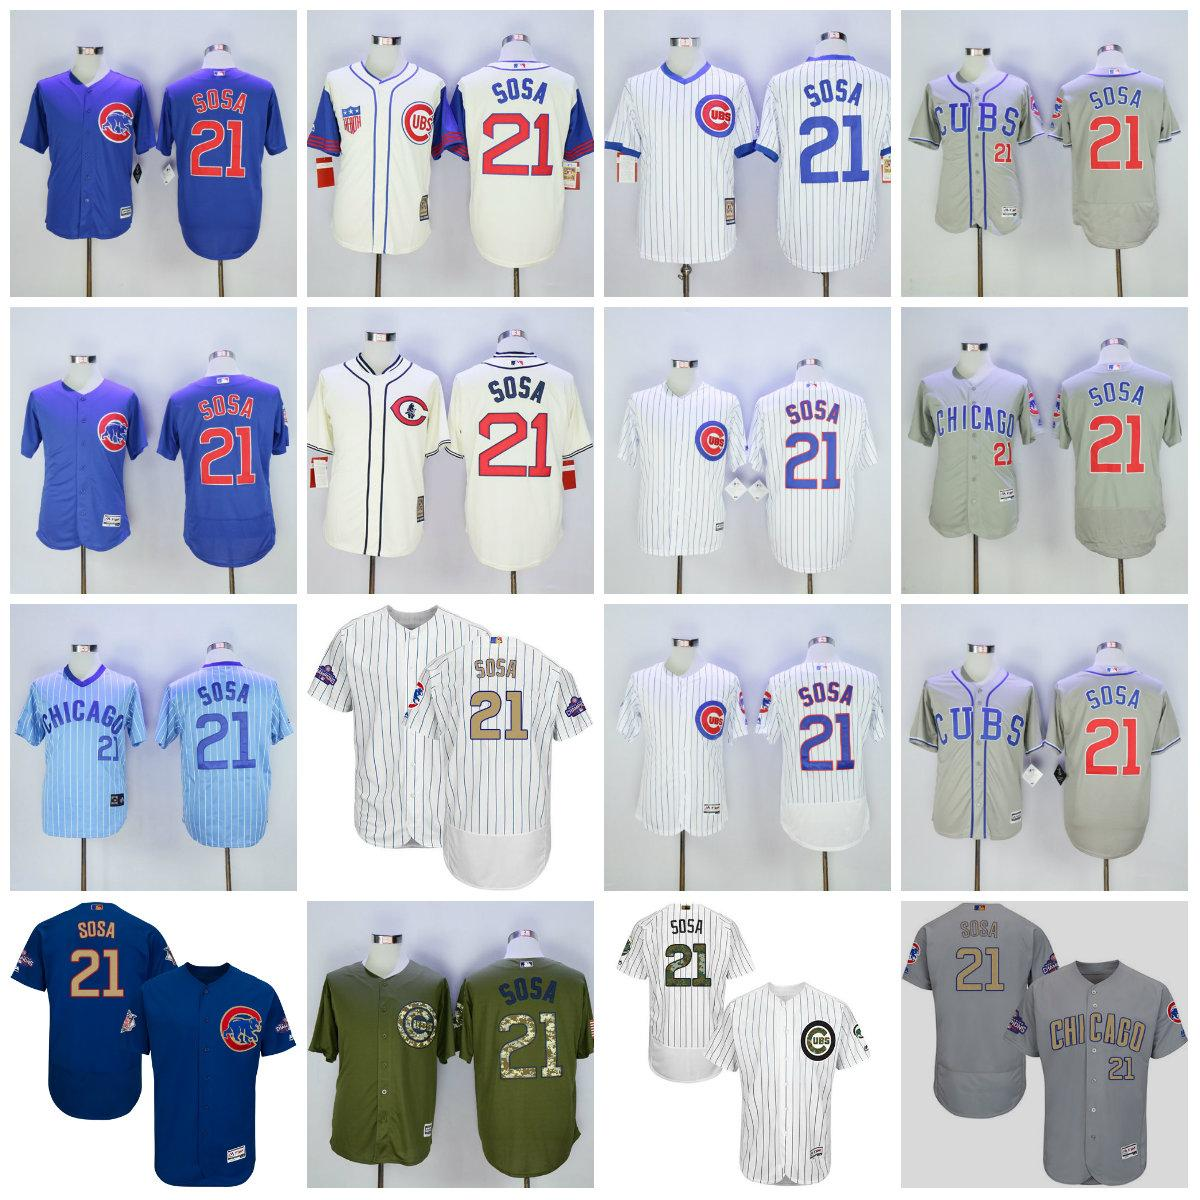 low priced cb400 1d326 21 sammy sosa jersey usa